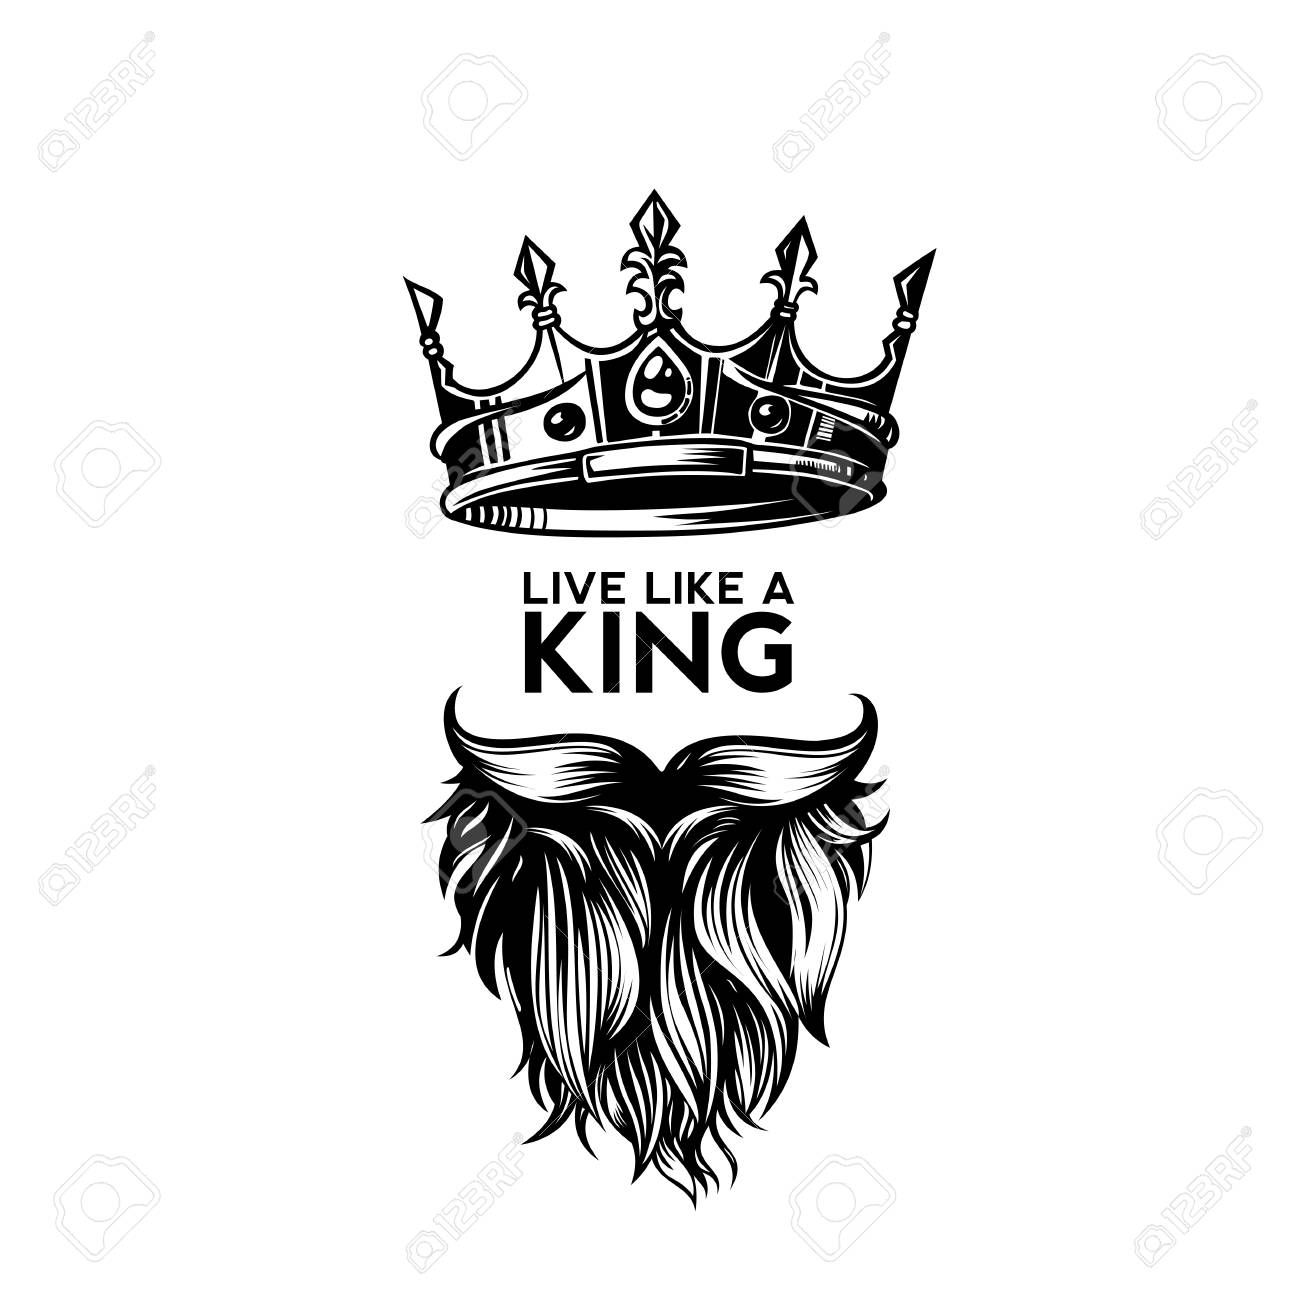 king crown moustache and beard on white background logo with rh 123rf com king crown logo vector free download king crown logo design